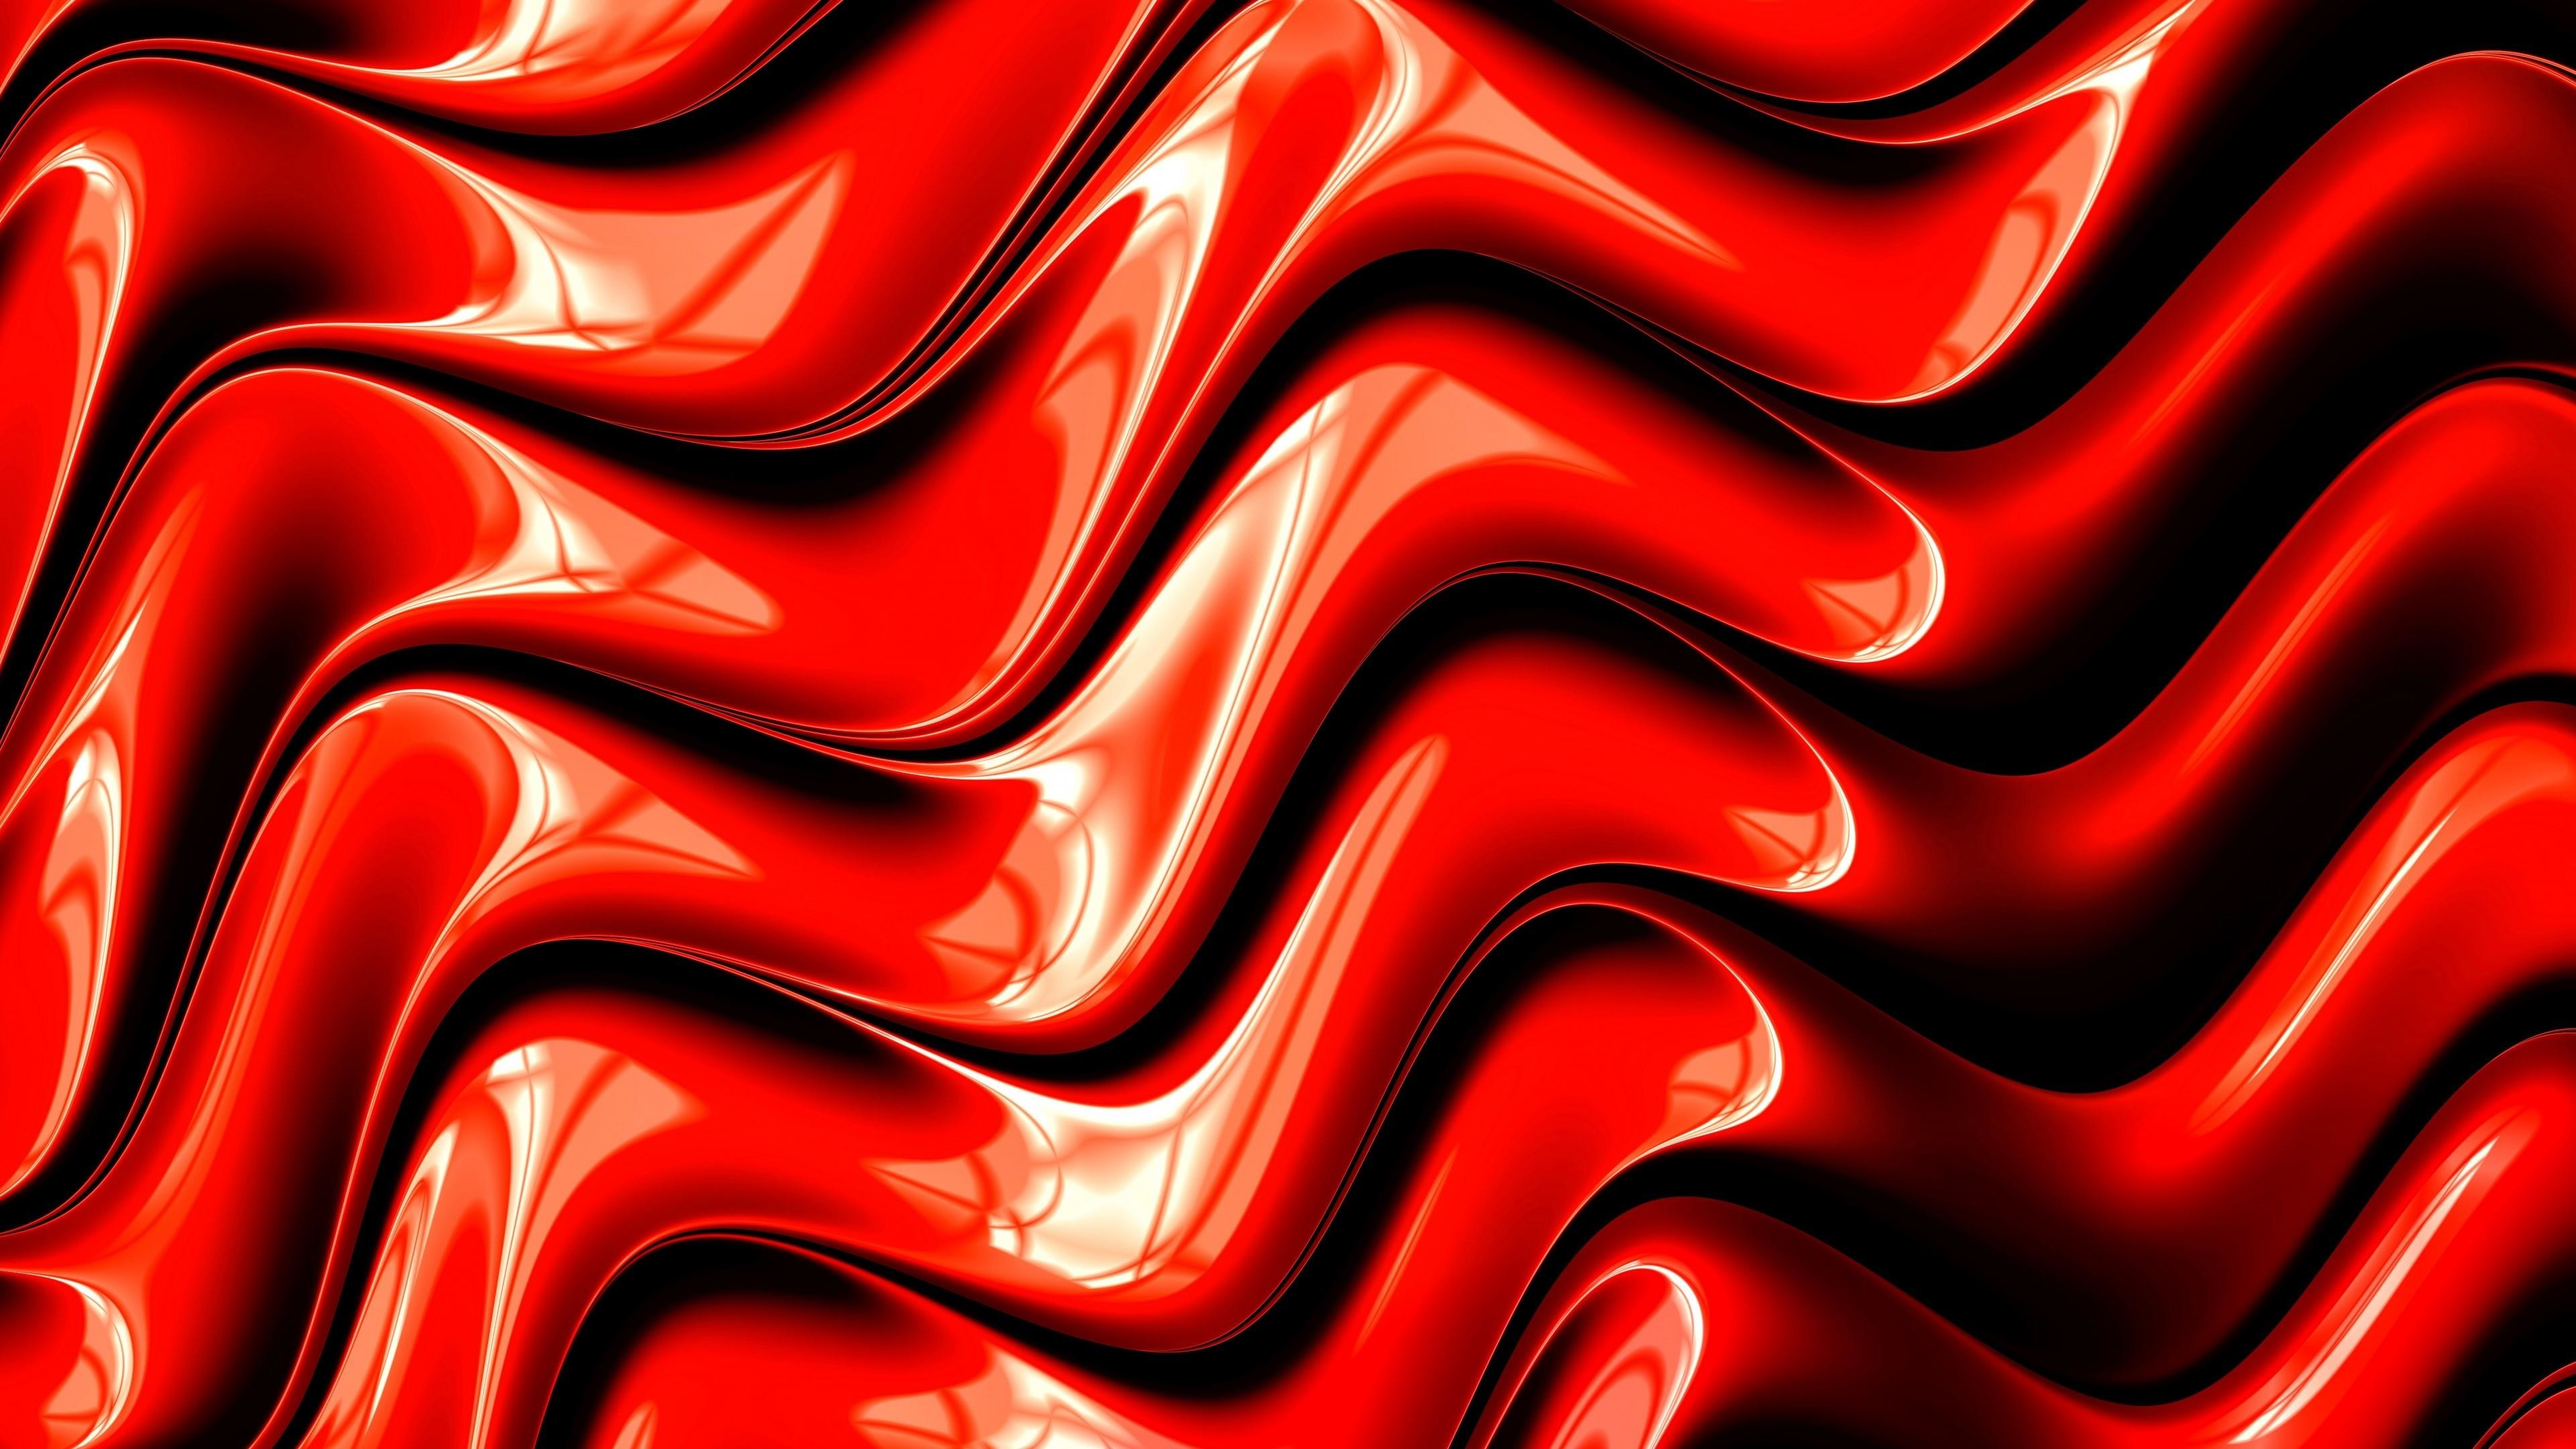 3840x2160 Cool red 3D graphic design wallpaper